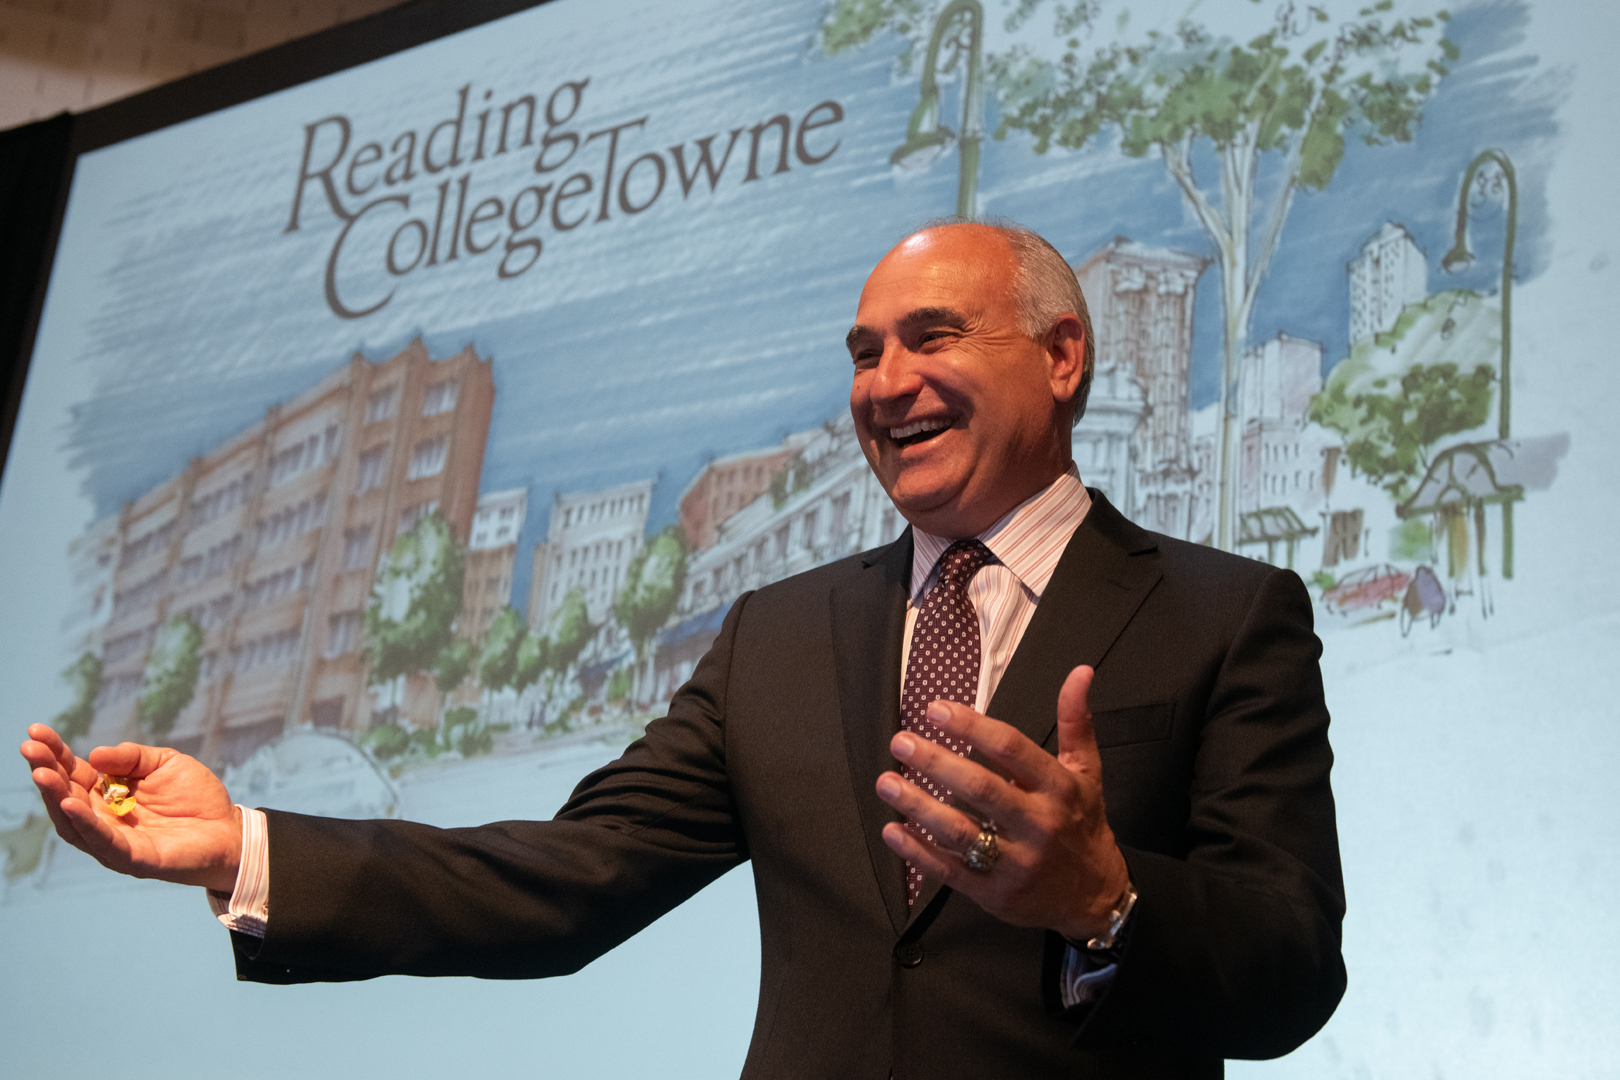 Alvernia University President John Loyack Reading CollegeTowne